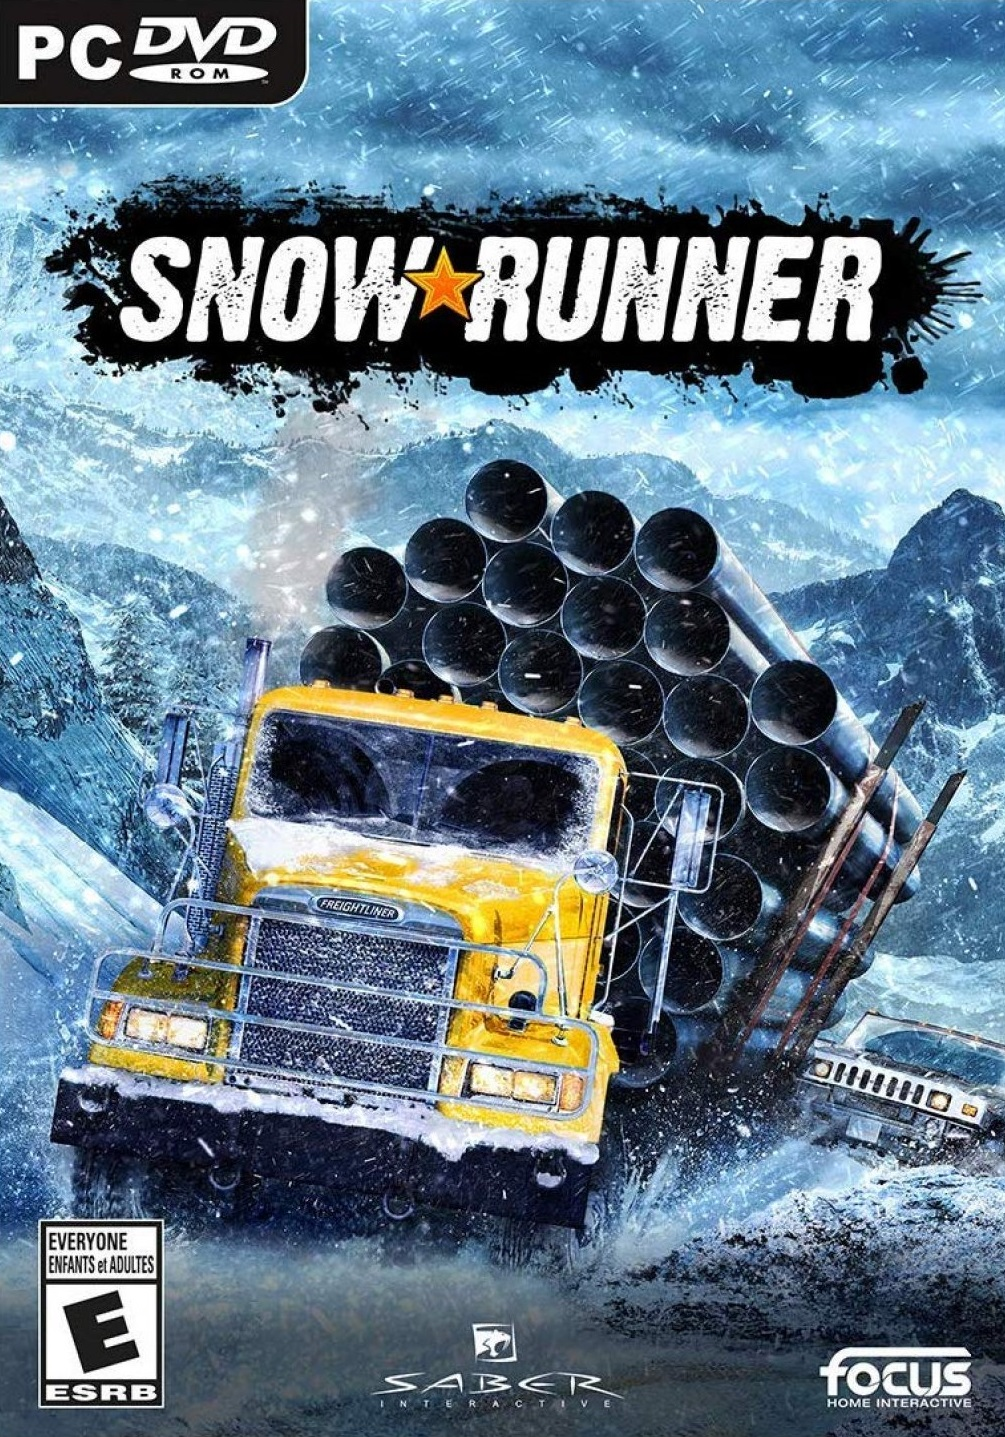 Descargar SnowRunner PC Cover Caratula